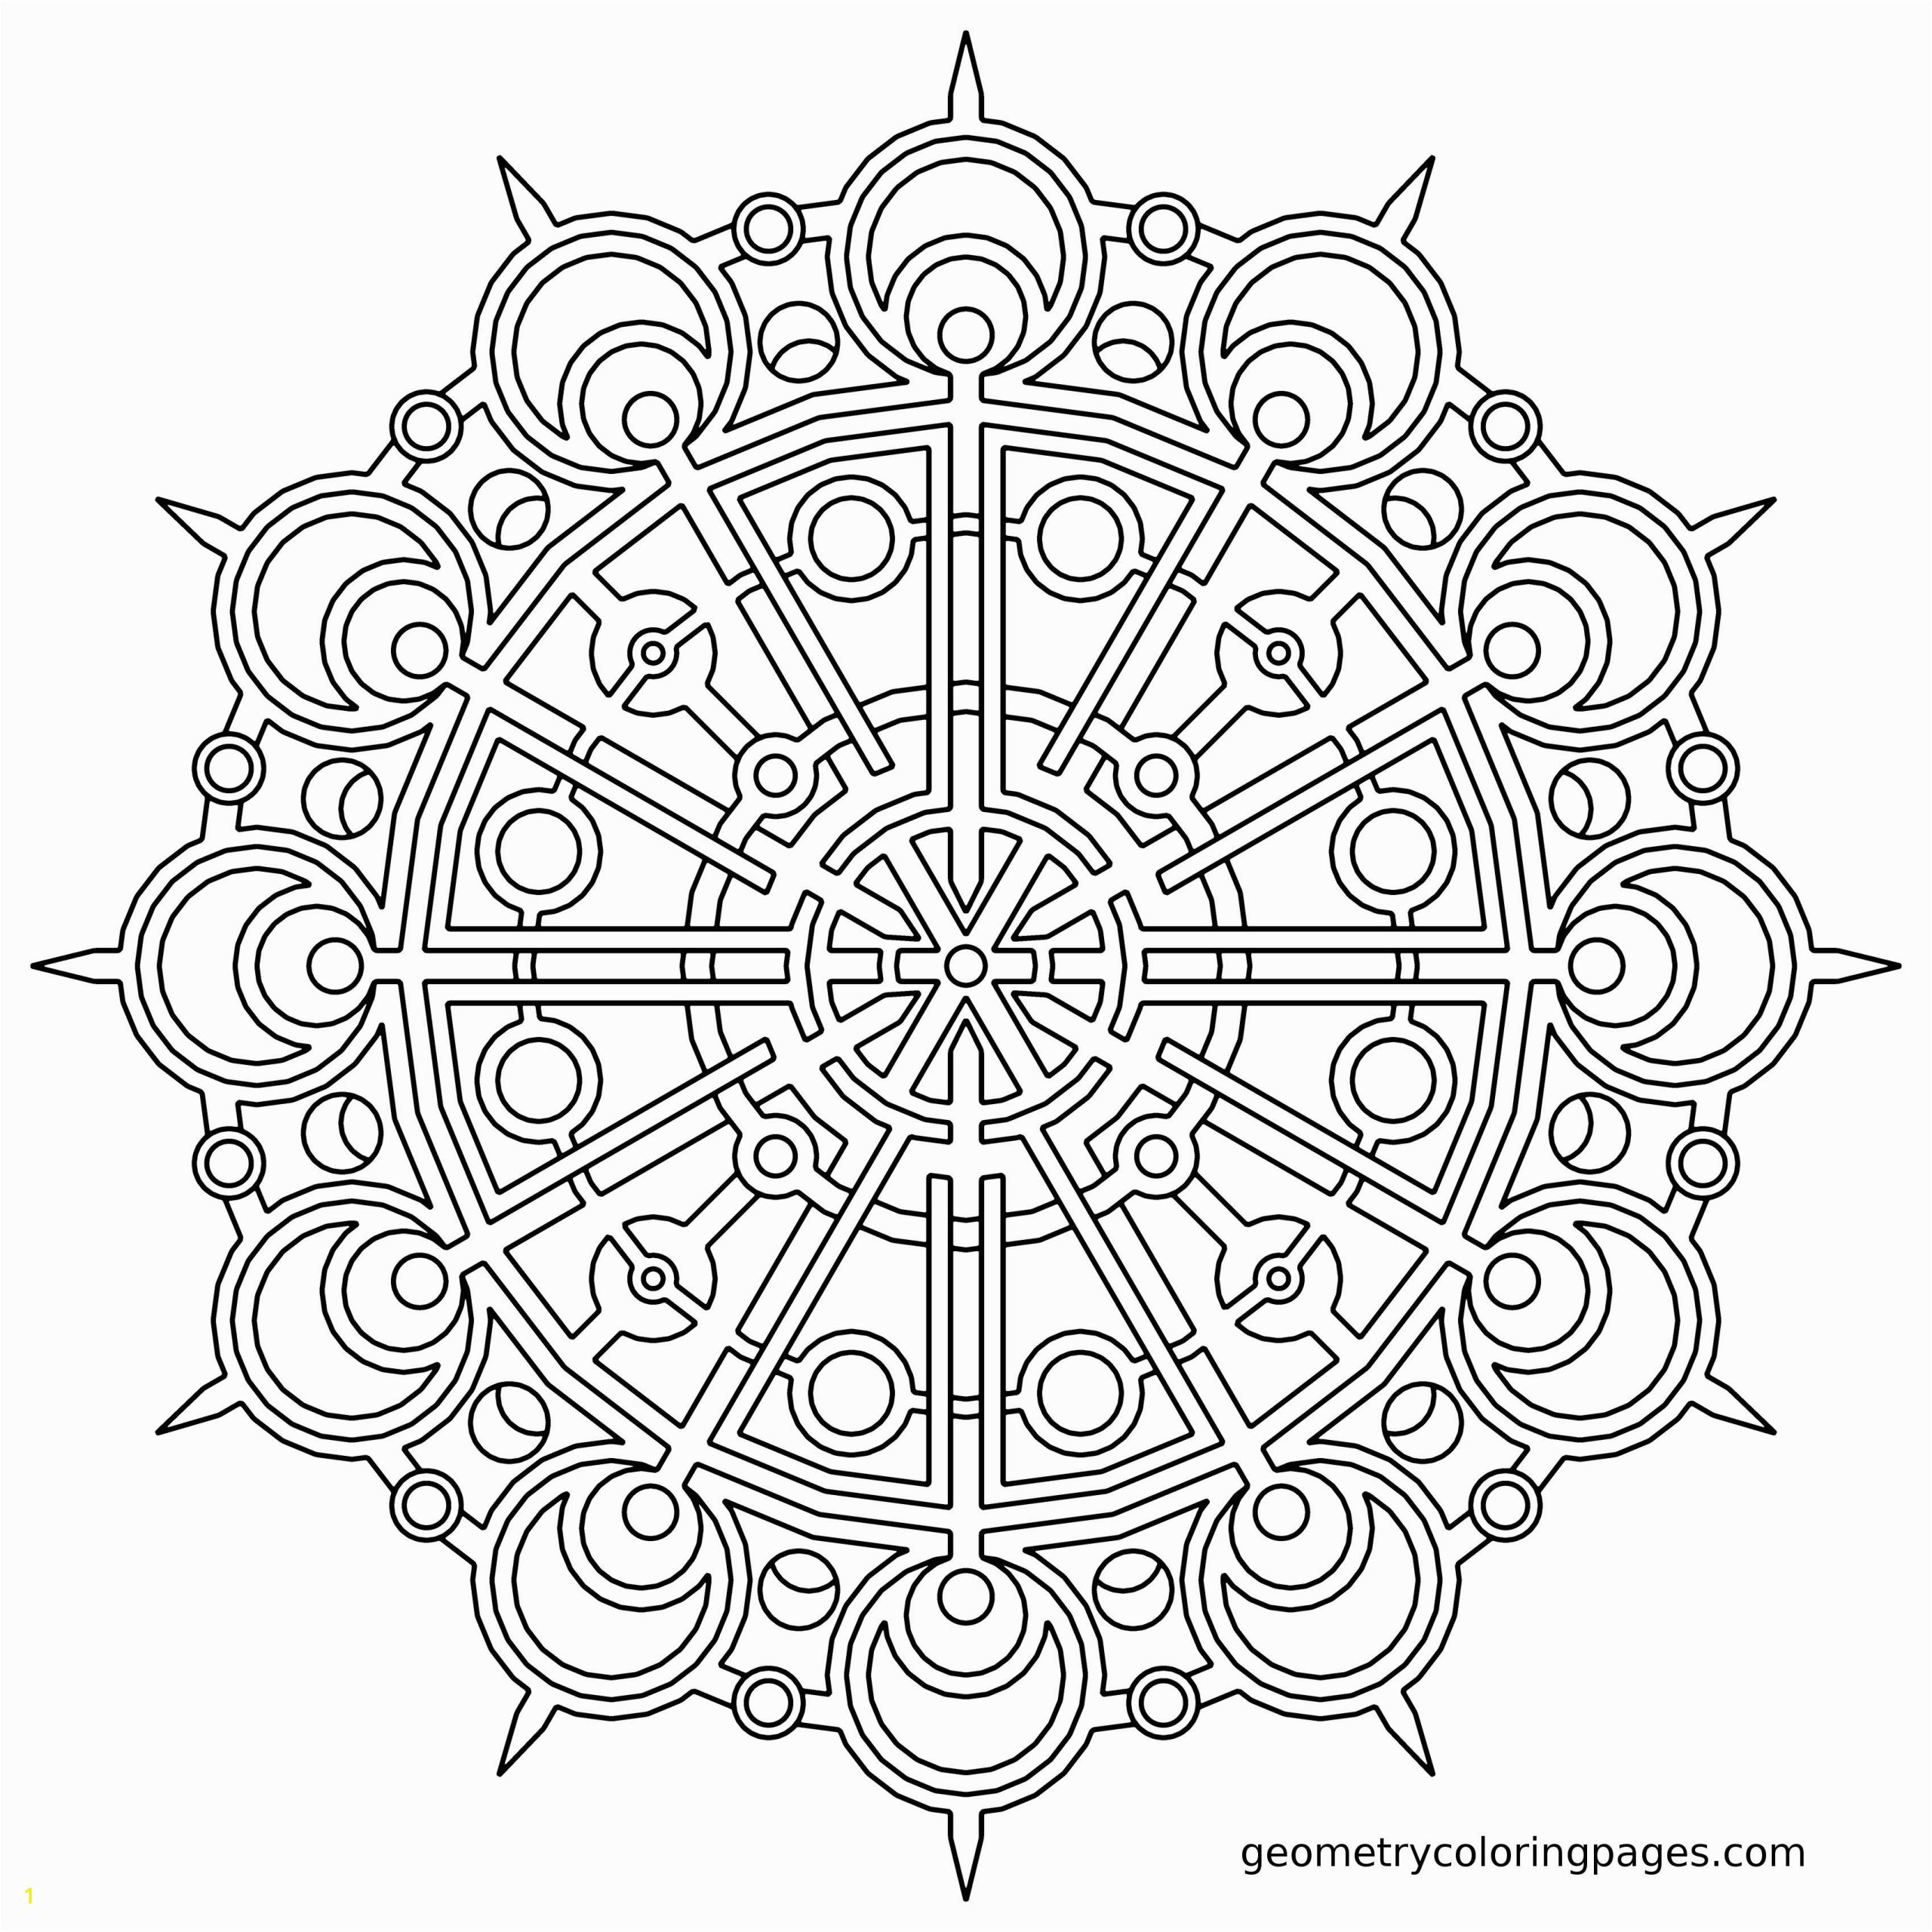 Geometric Mandala Coloring Pages Mandala Coloring Page Coordinator From